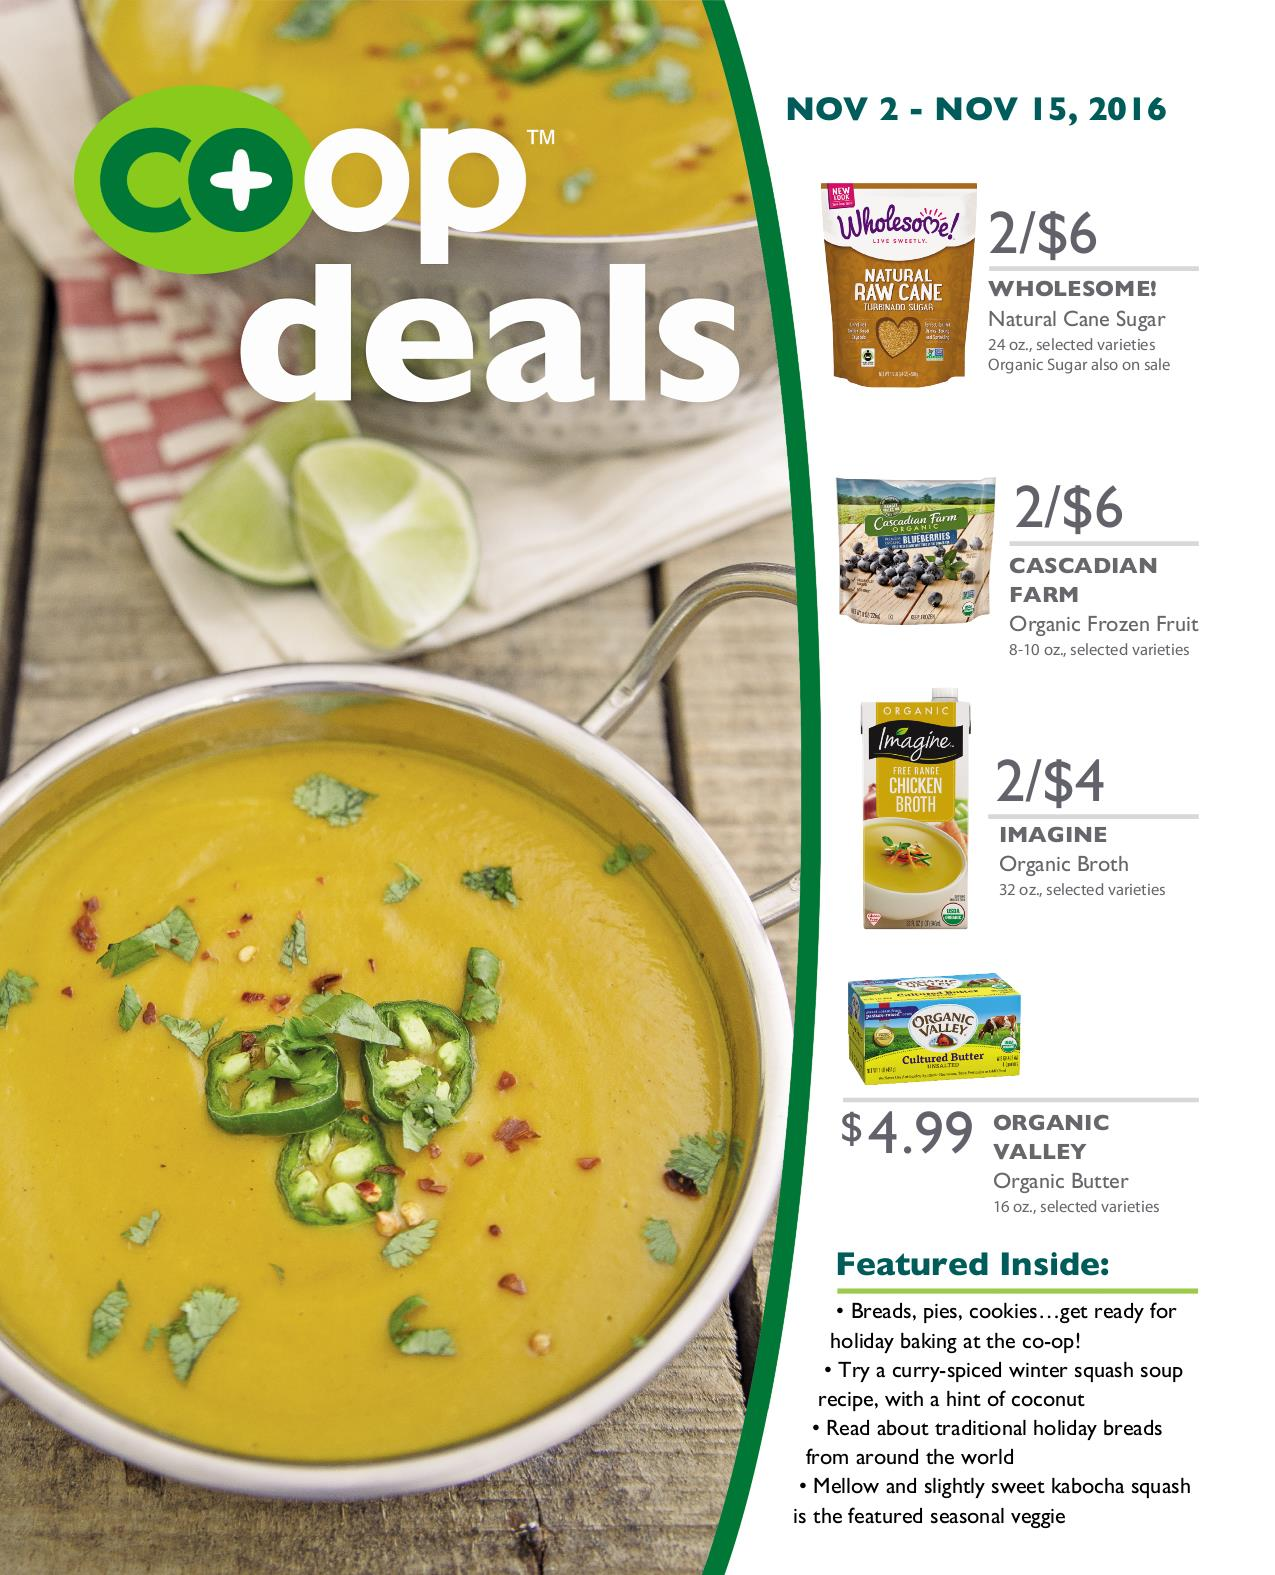 Co+op Deals November 2016 - Flyer A